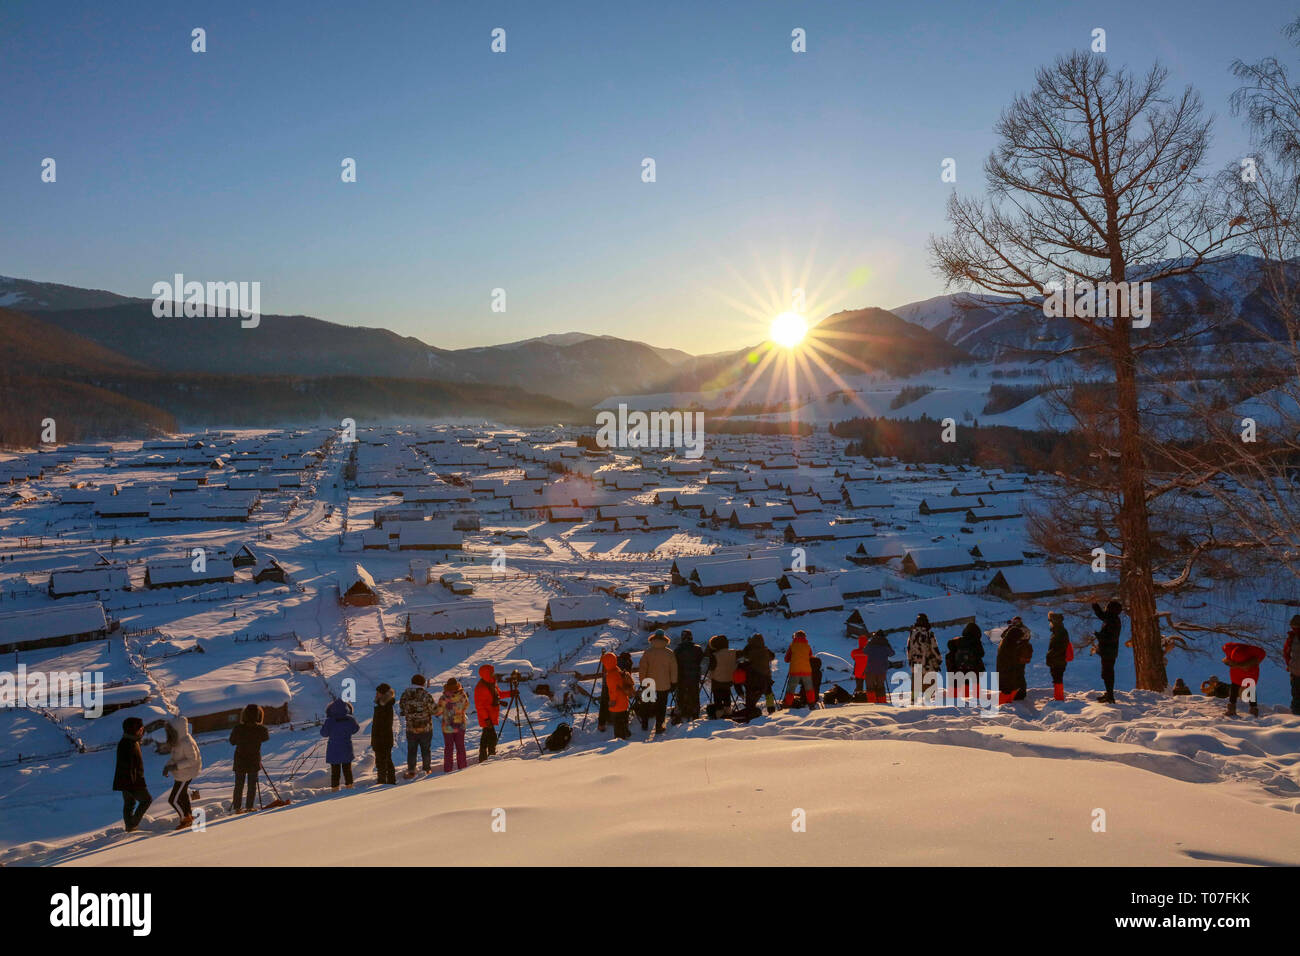 (190318) -- BEIJING, March 18, 2019 (Xinhua) -- Tourists take photos of sunset at the Kanas scenic area in Kanas, northwest China's Xinjiang Uygur Autonomous Region, Feb. 9, 2019. (Xinhua/Lei Dongxiang) Stock Photo